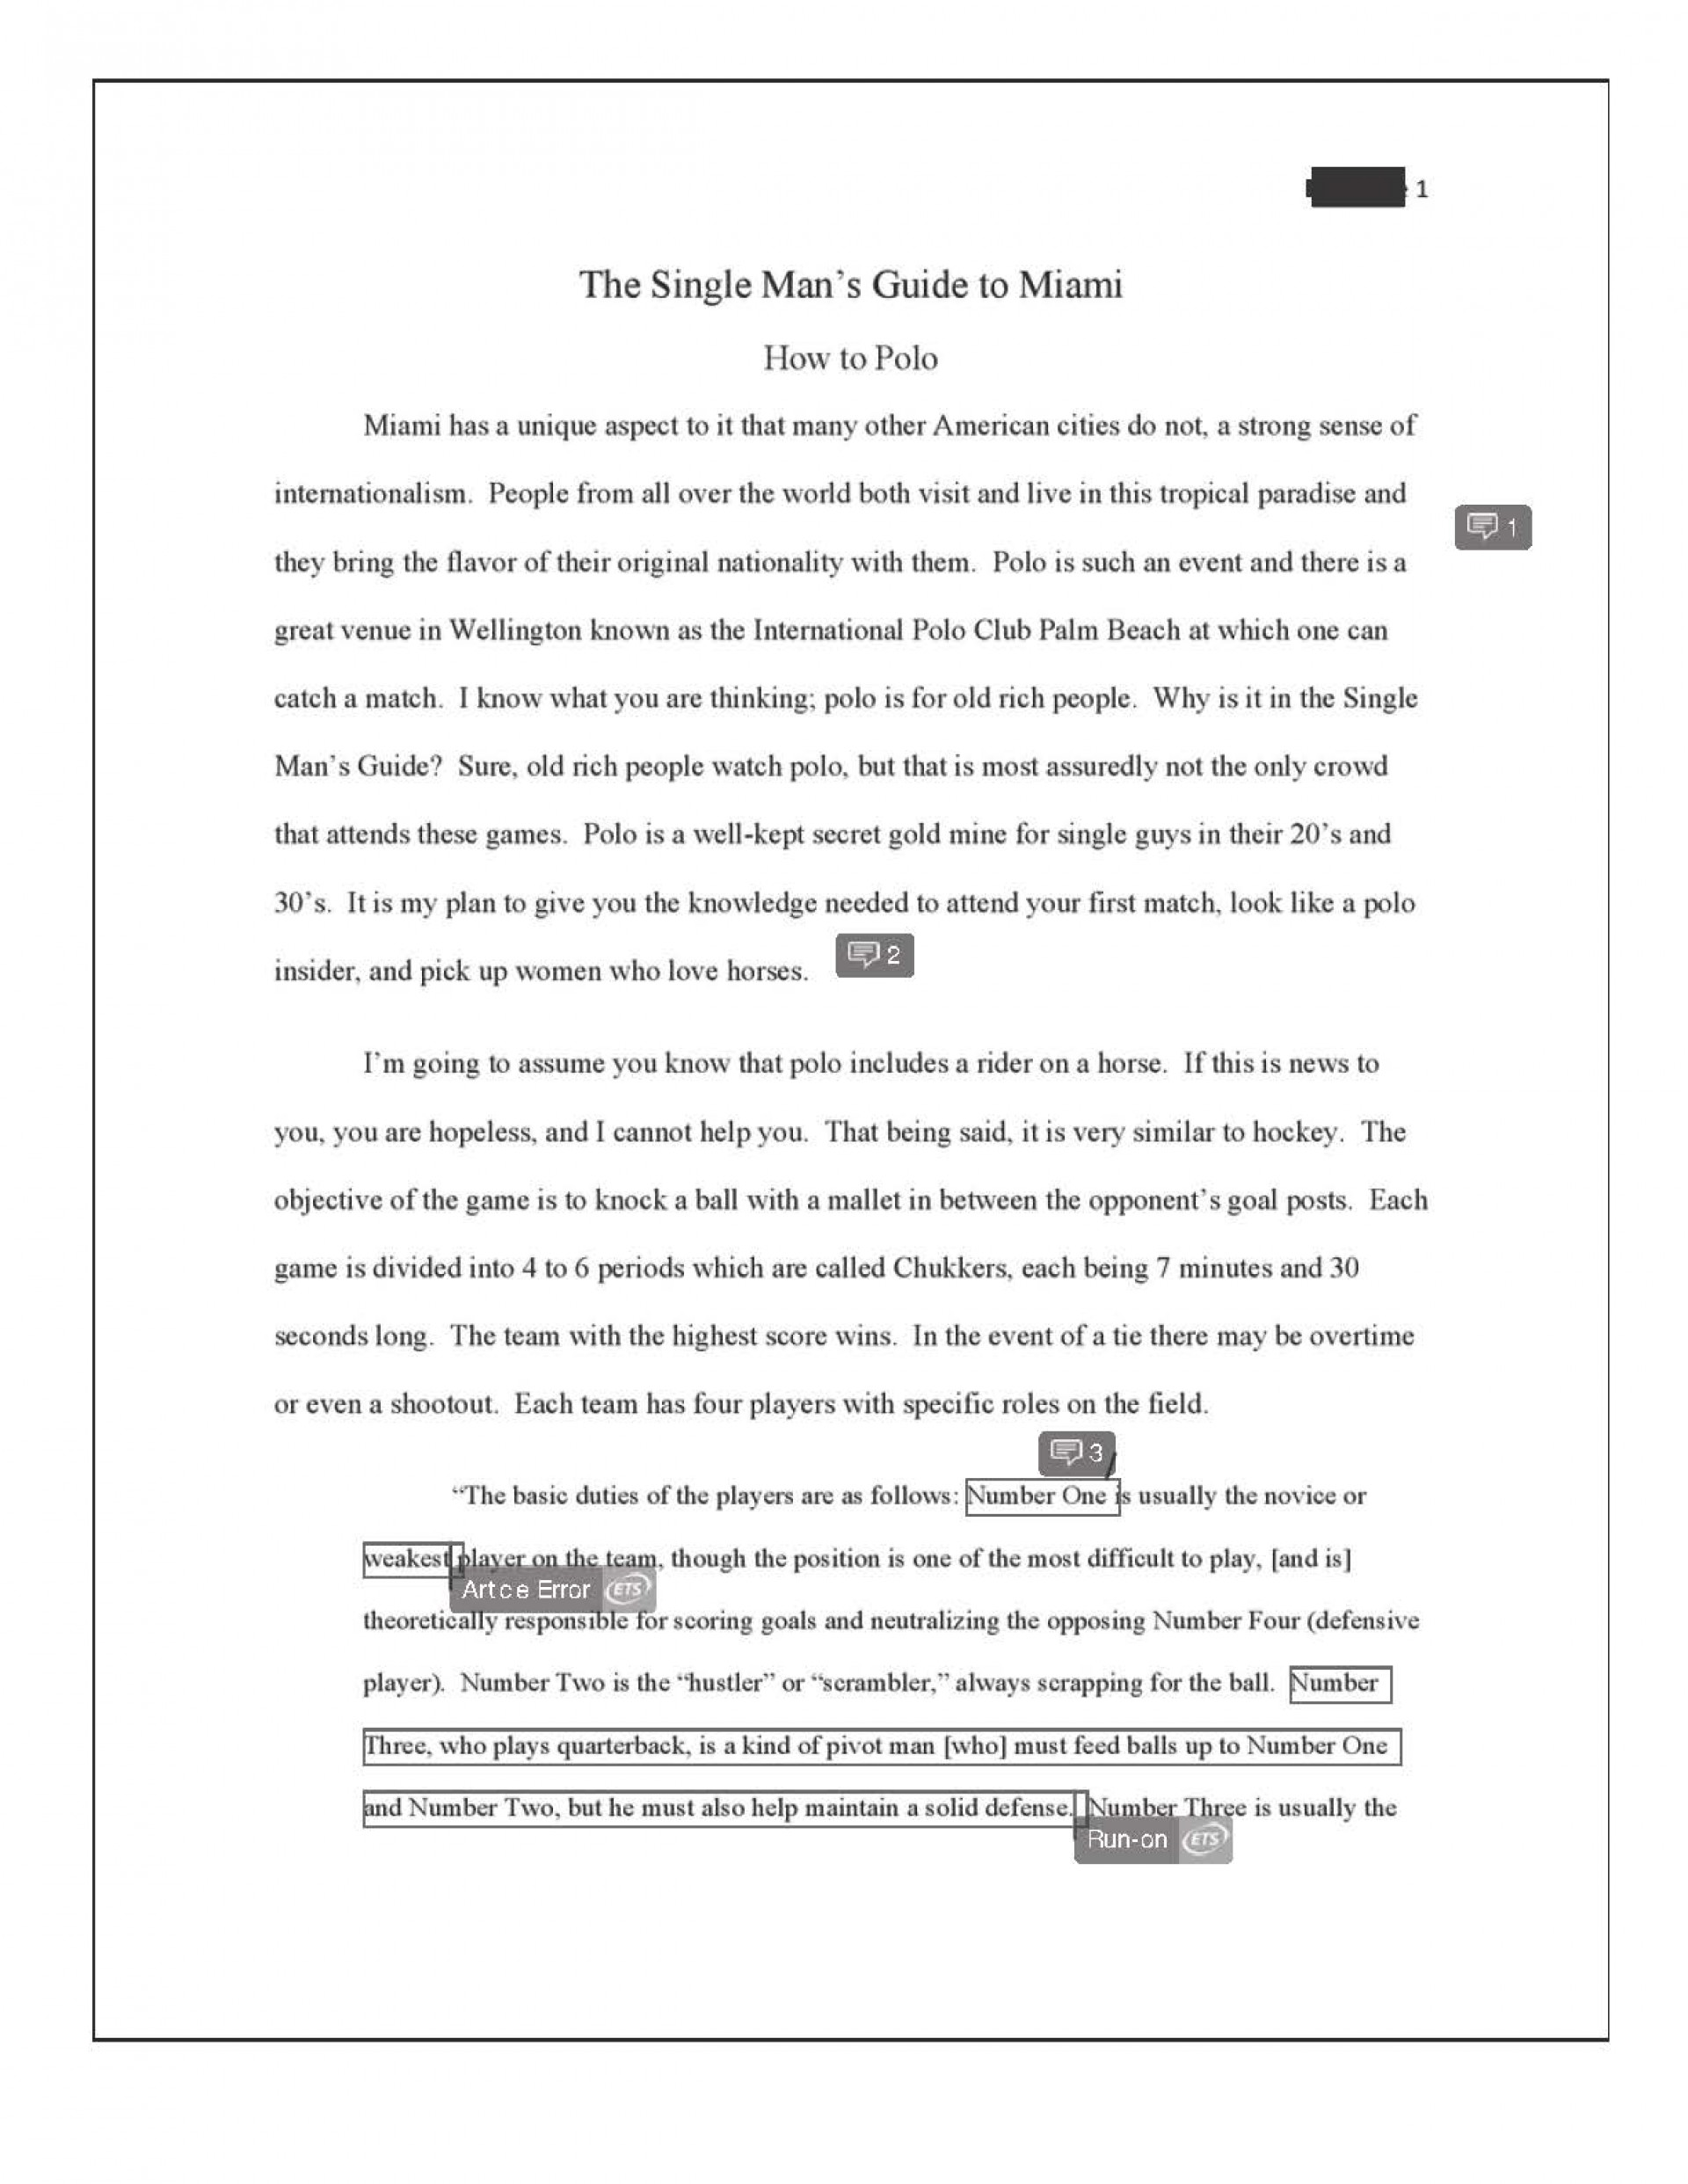 028 Essay Example Informative Final How To Polo Redacted Page 2 Unforgettable Outline 5th Grade Examples 1920